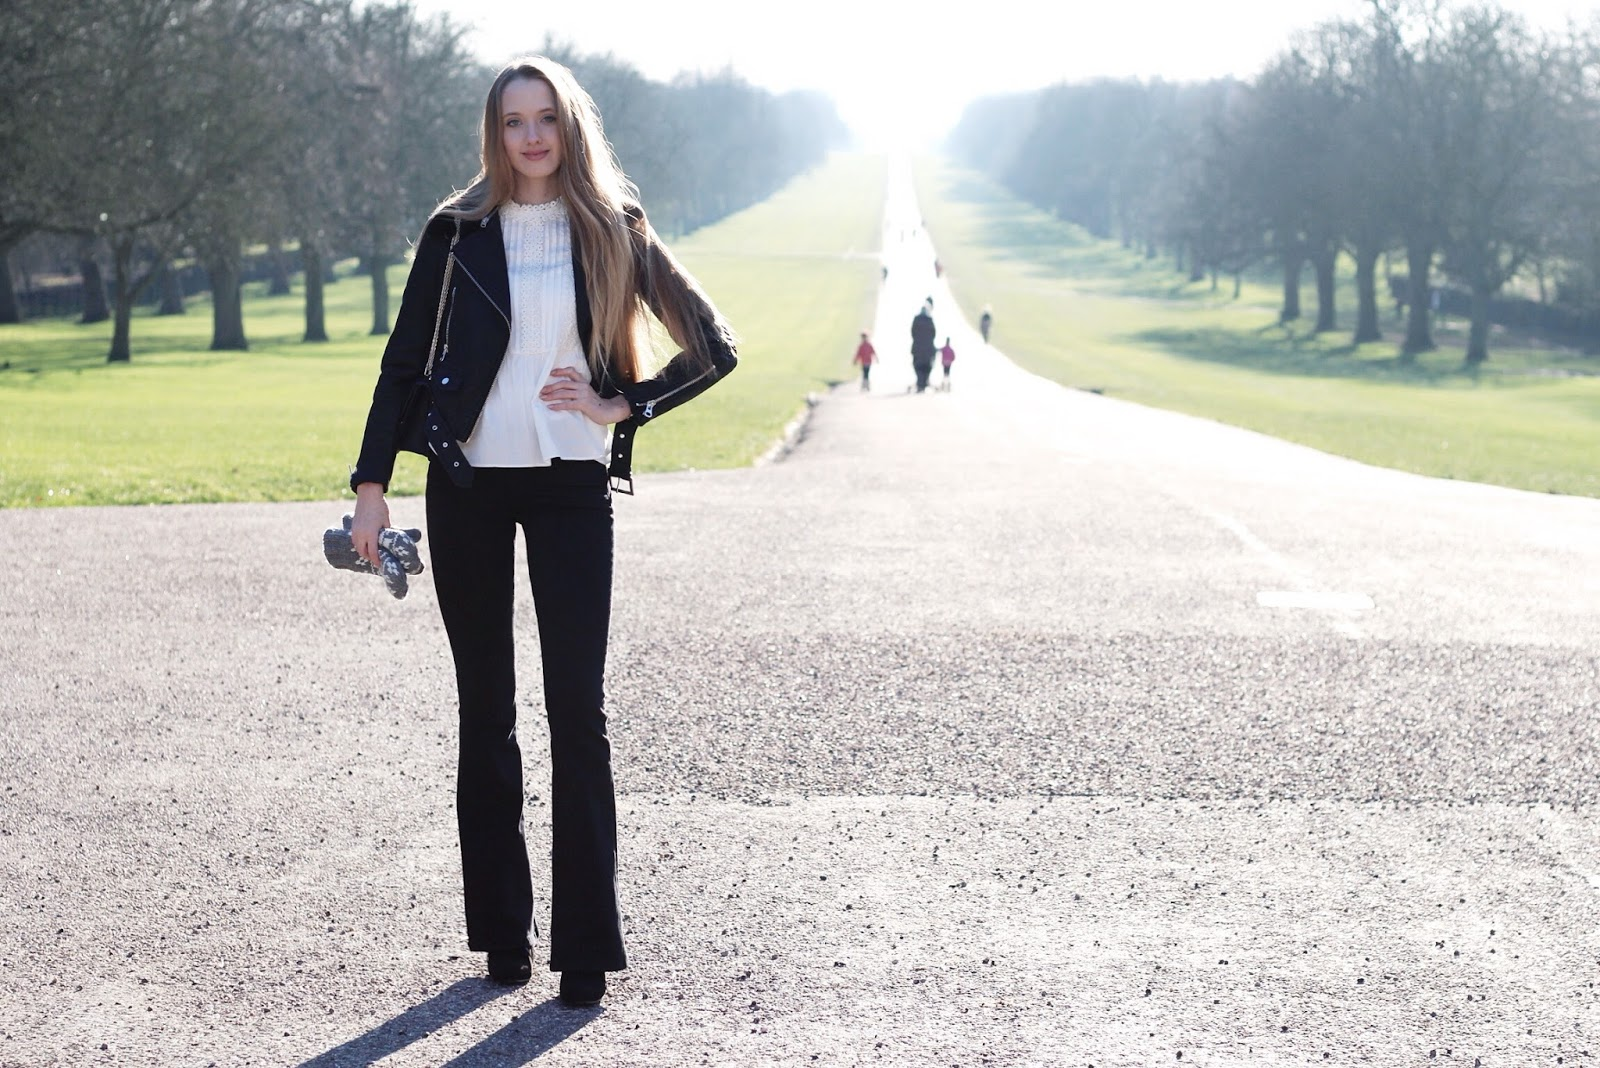 The famous Long Walk in Royal Windsor